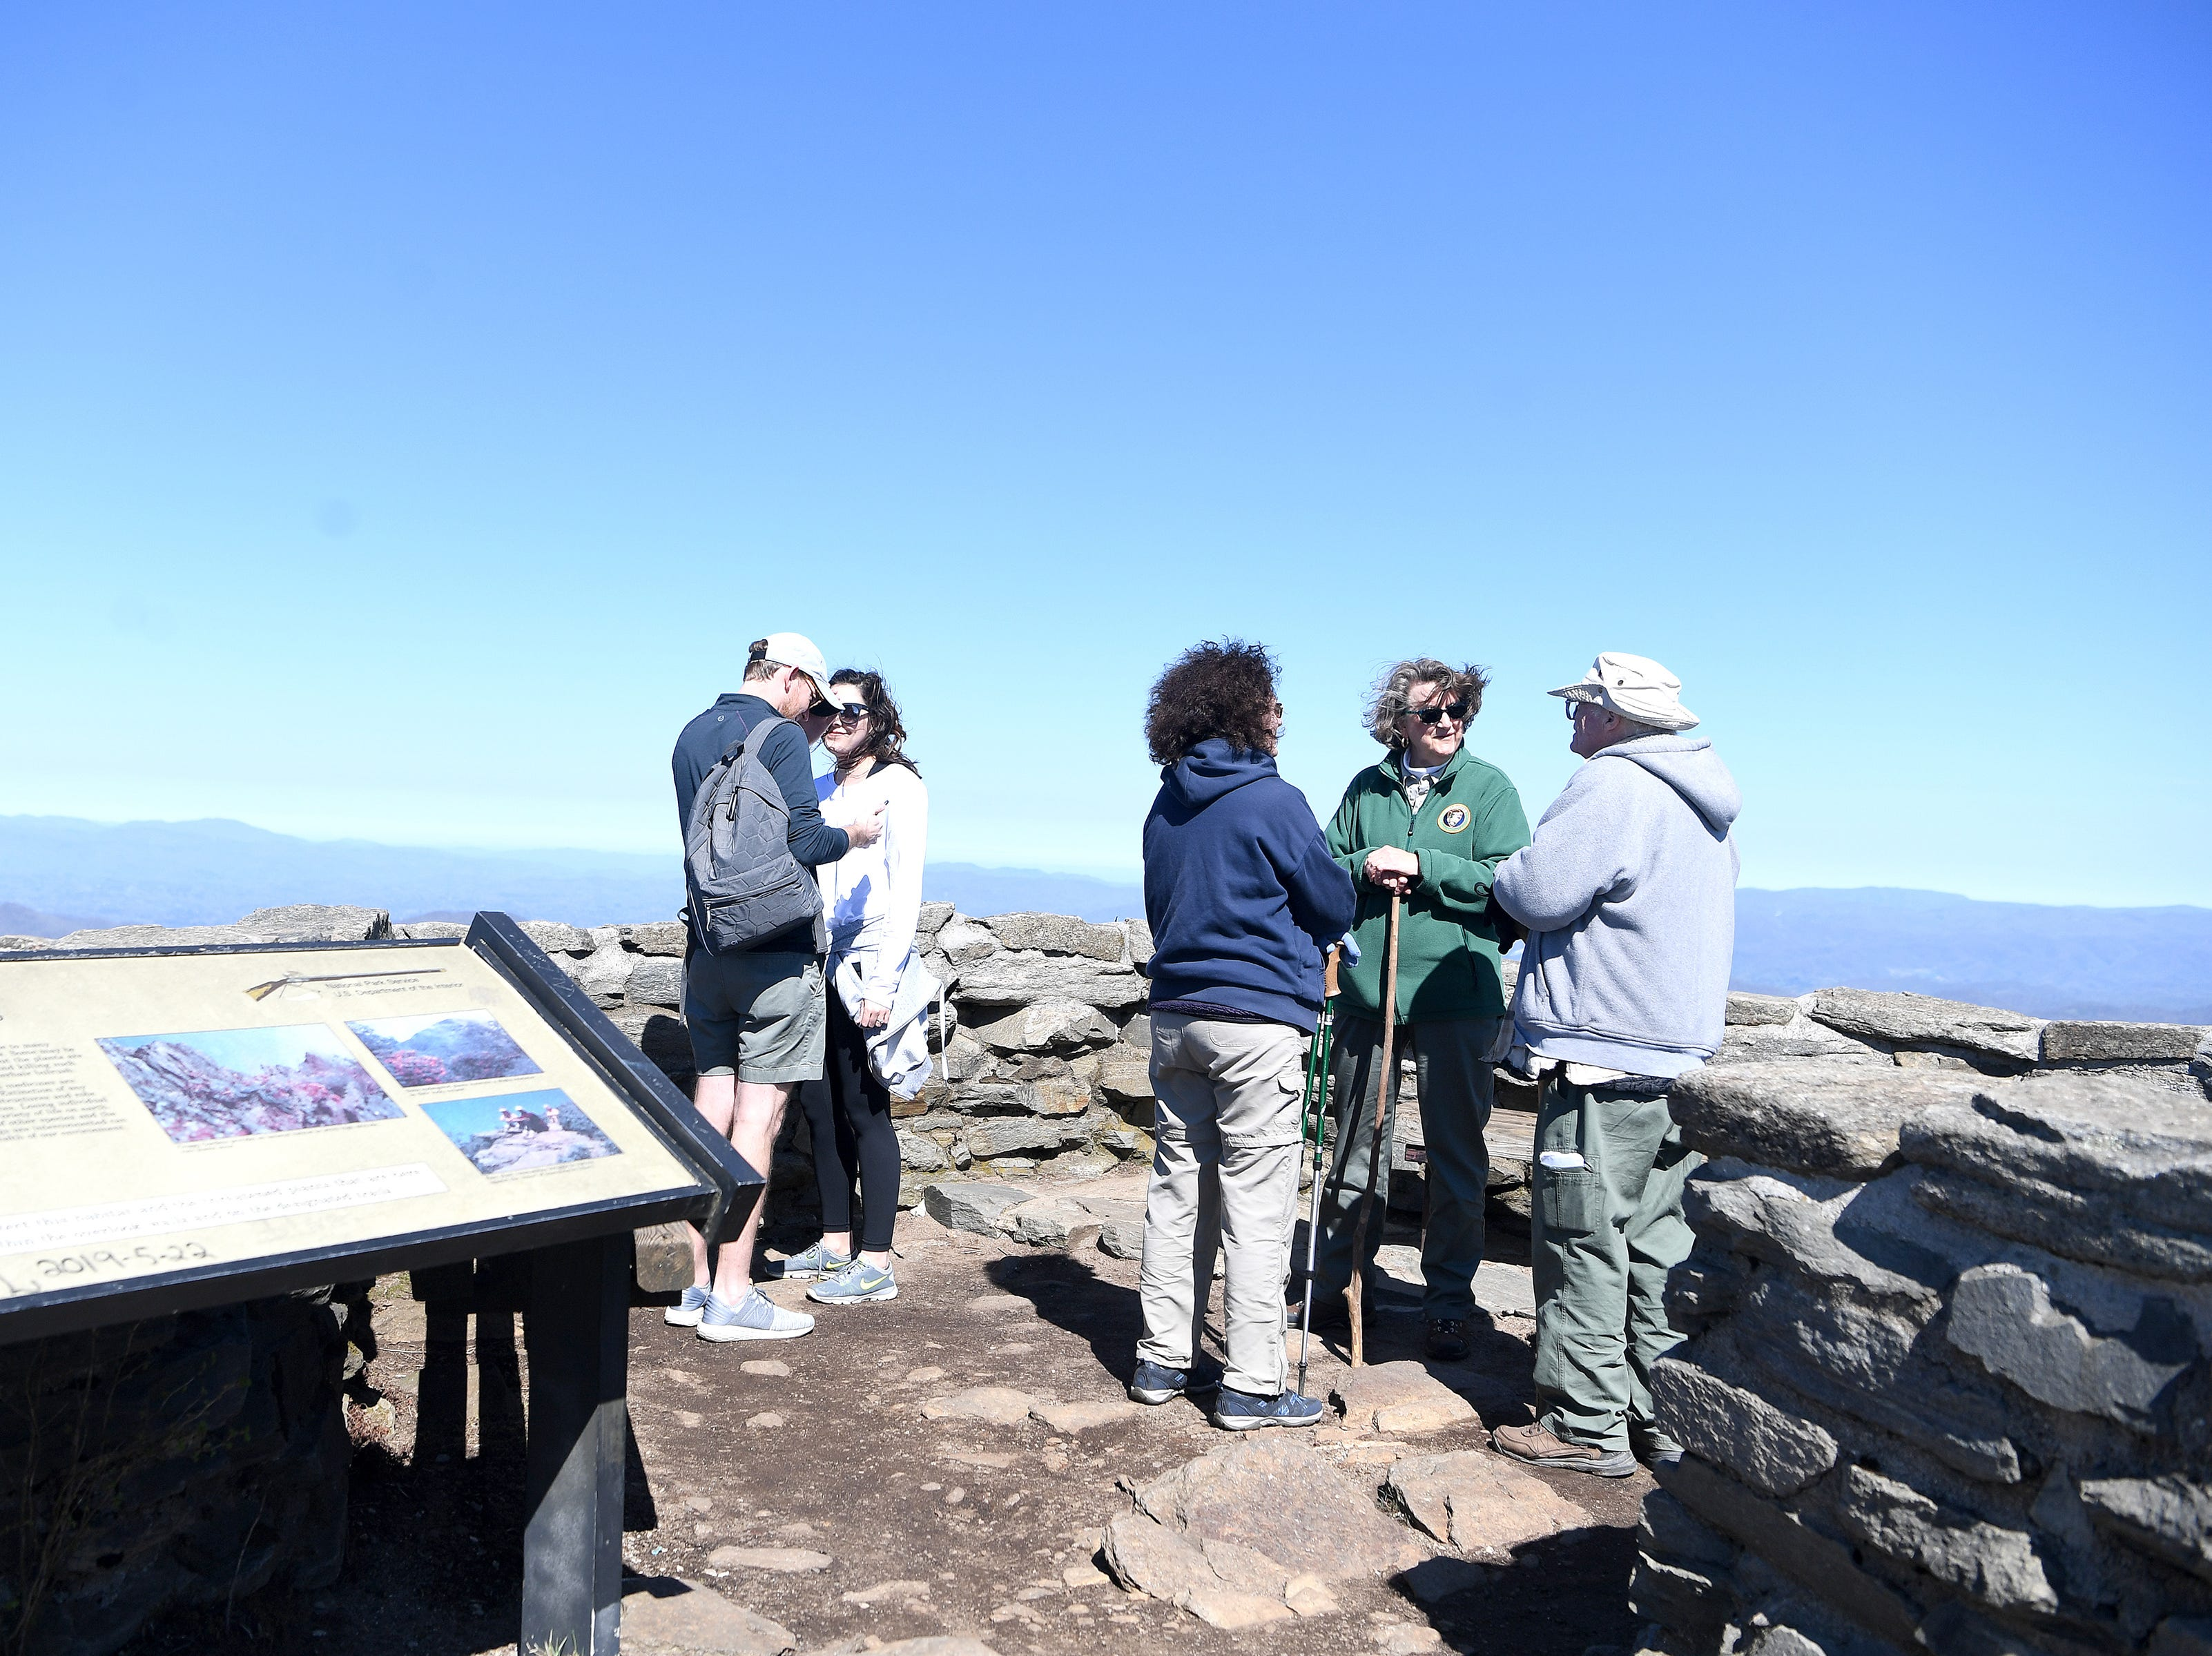 Friends of the Blue Ridge Parkway co-chair Nancy Midgette, center right, answers questions from Claire and Dave Davis, of West Virginia, at the overlook of the Craggy Pinnacle trail on April 22, 2019.